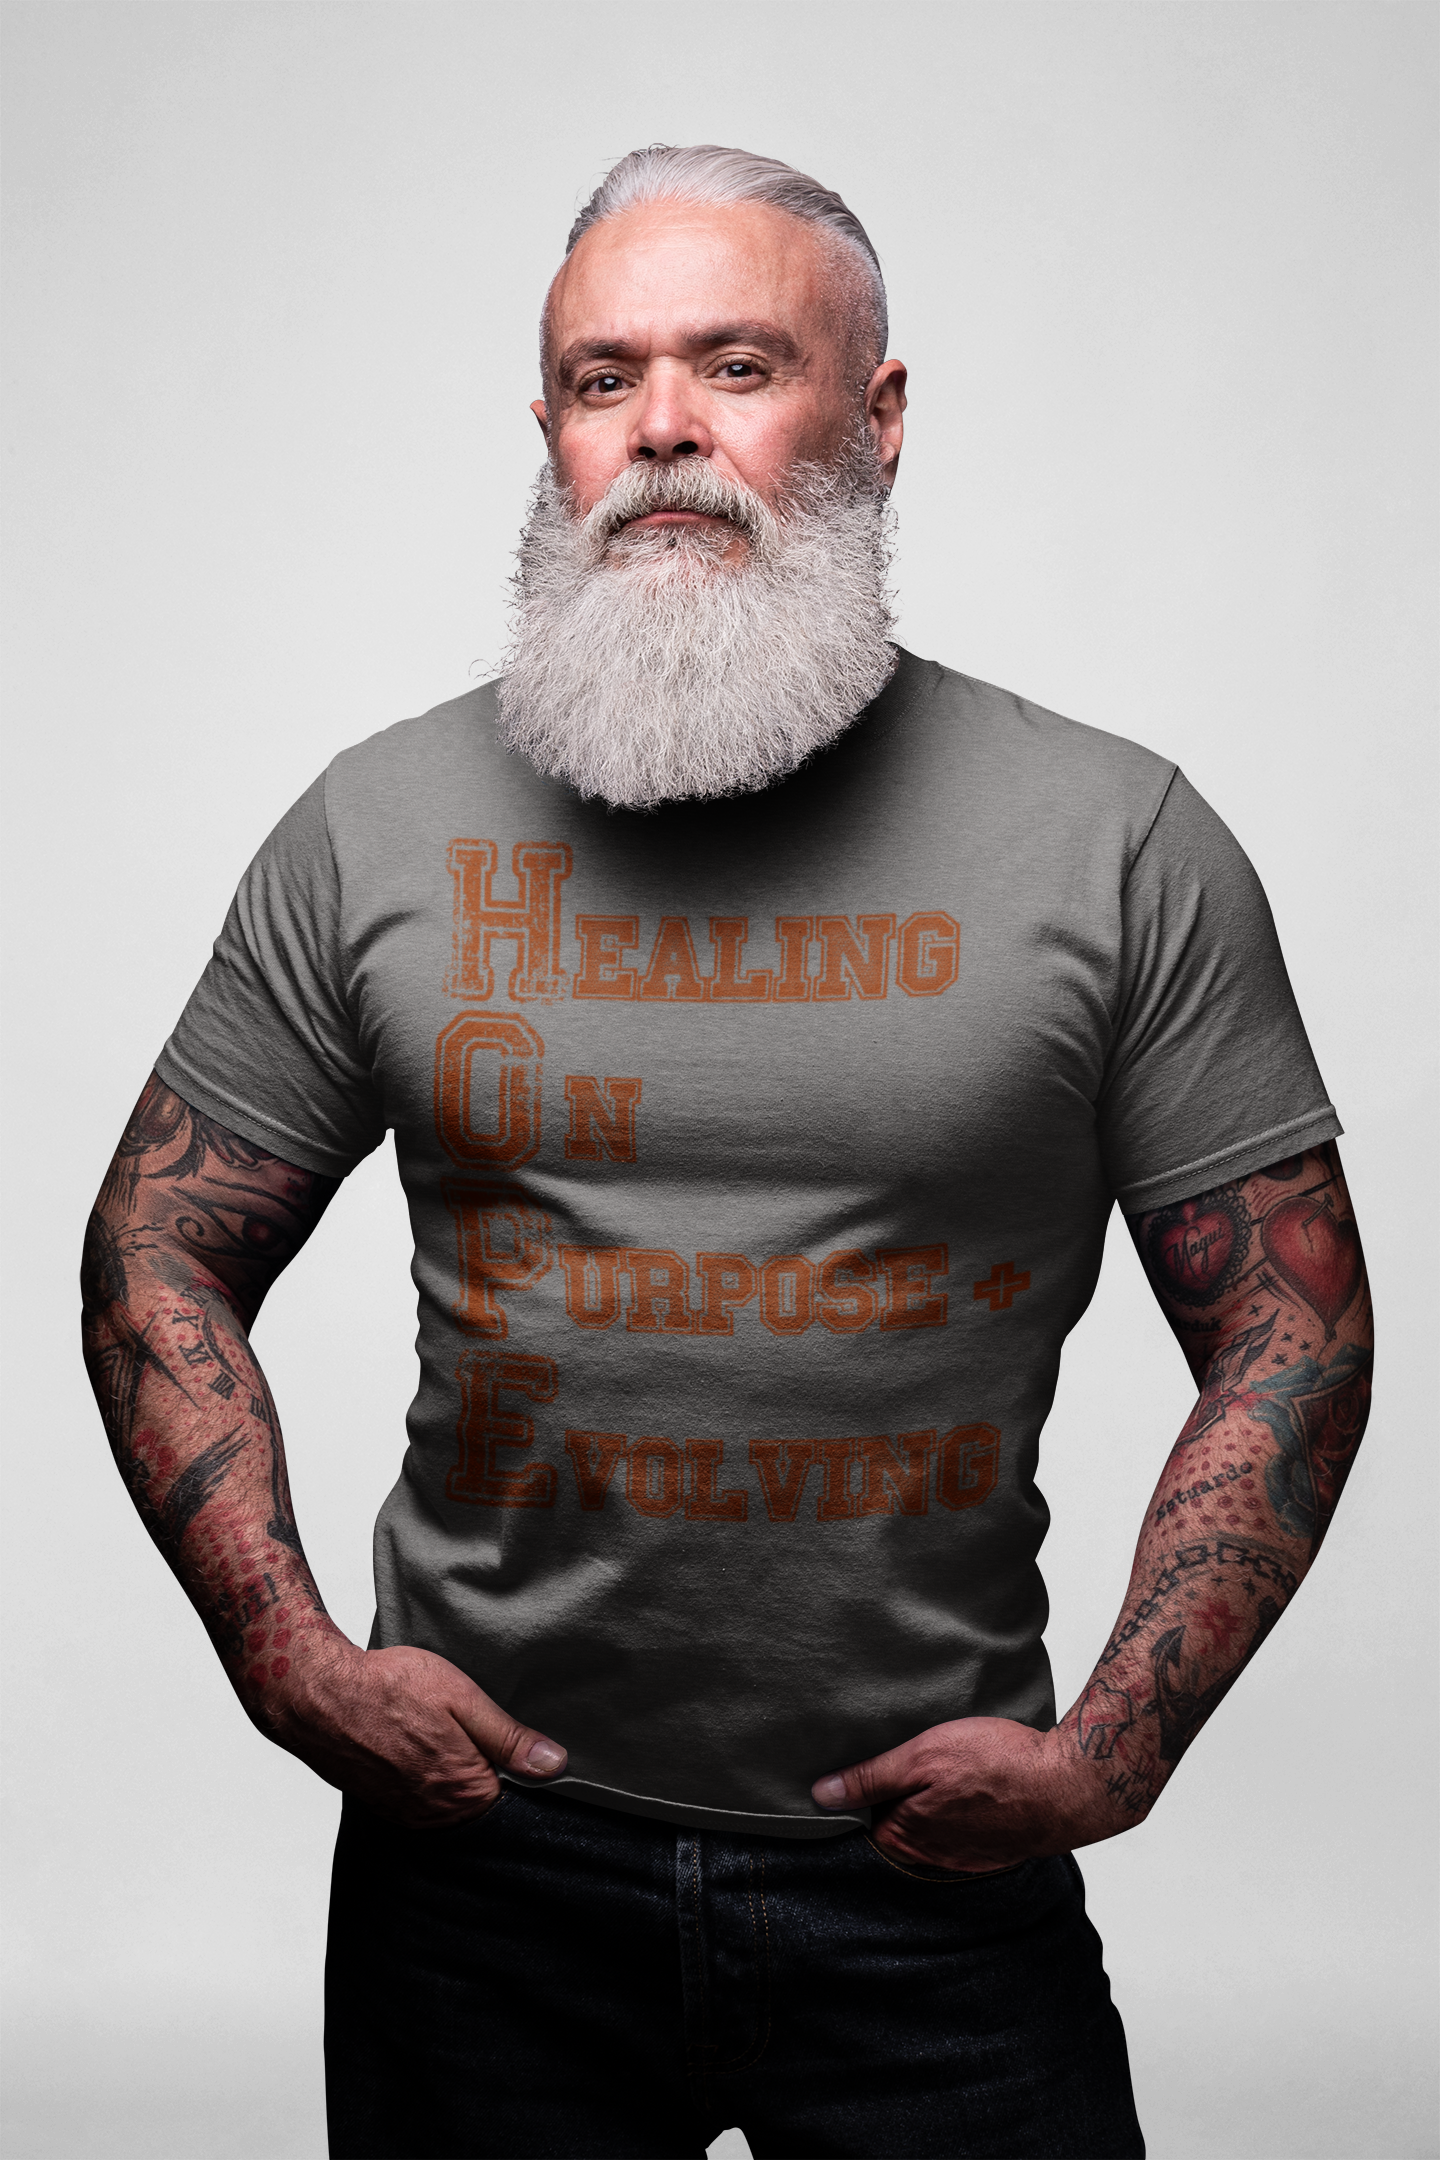 HOPE - HEALING ON PURPOSE EVOLVING GREY SHORT SLEEVE T-SHIRT | UNISEX | SALE